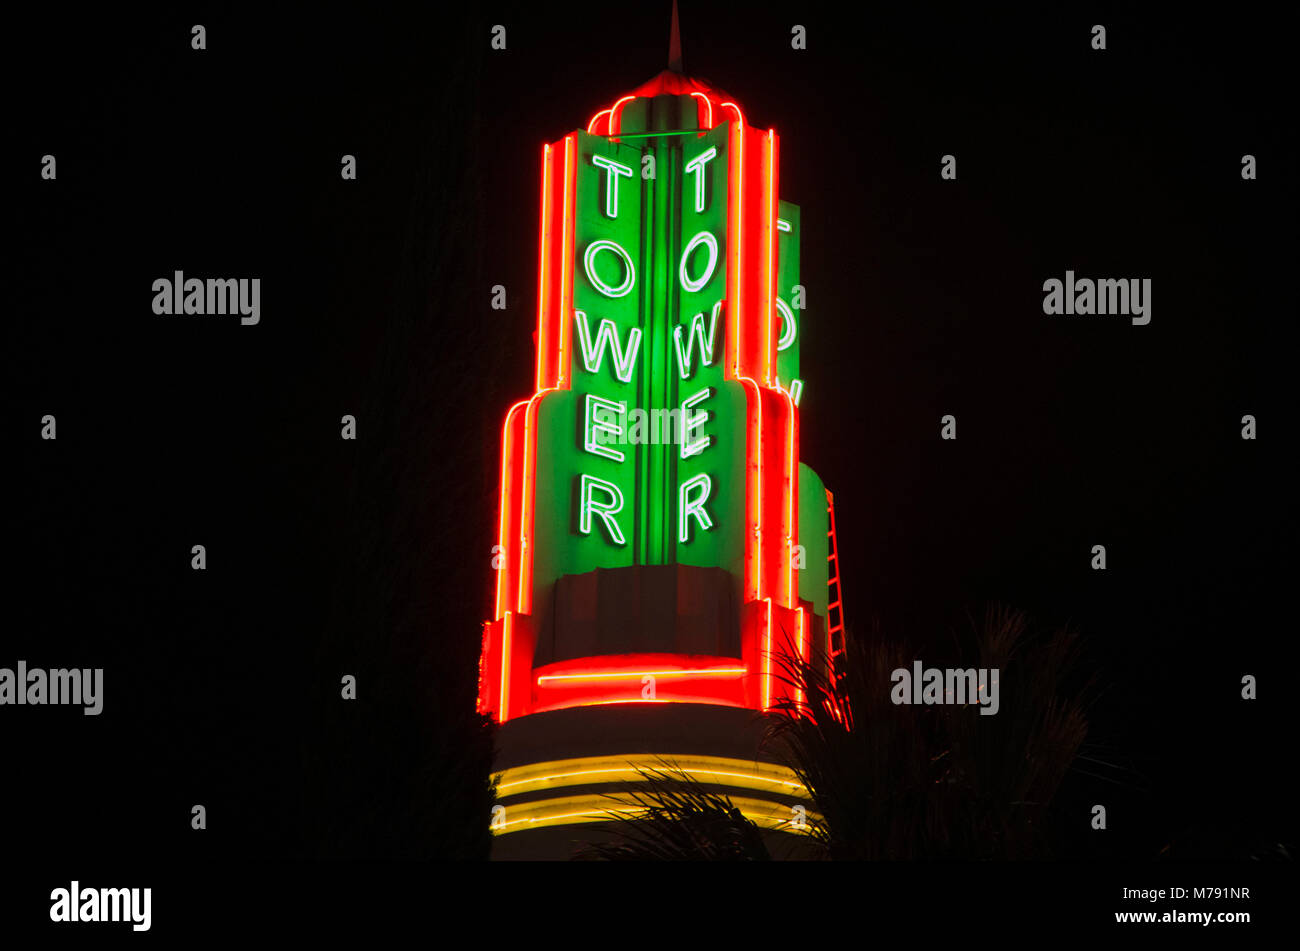 The Tower sign in Sacramento is a famous landmark. Stock Photo